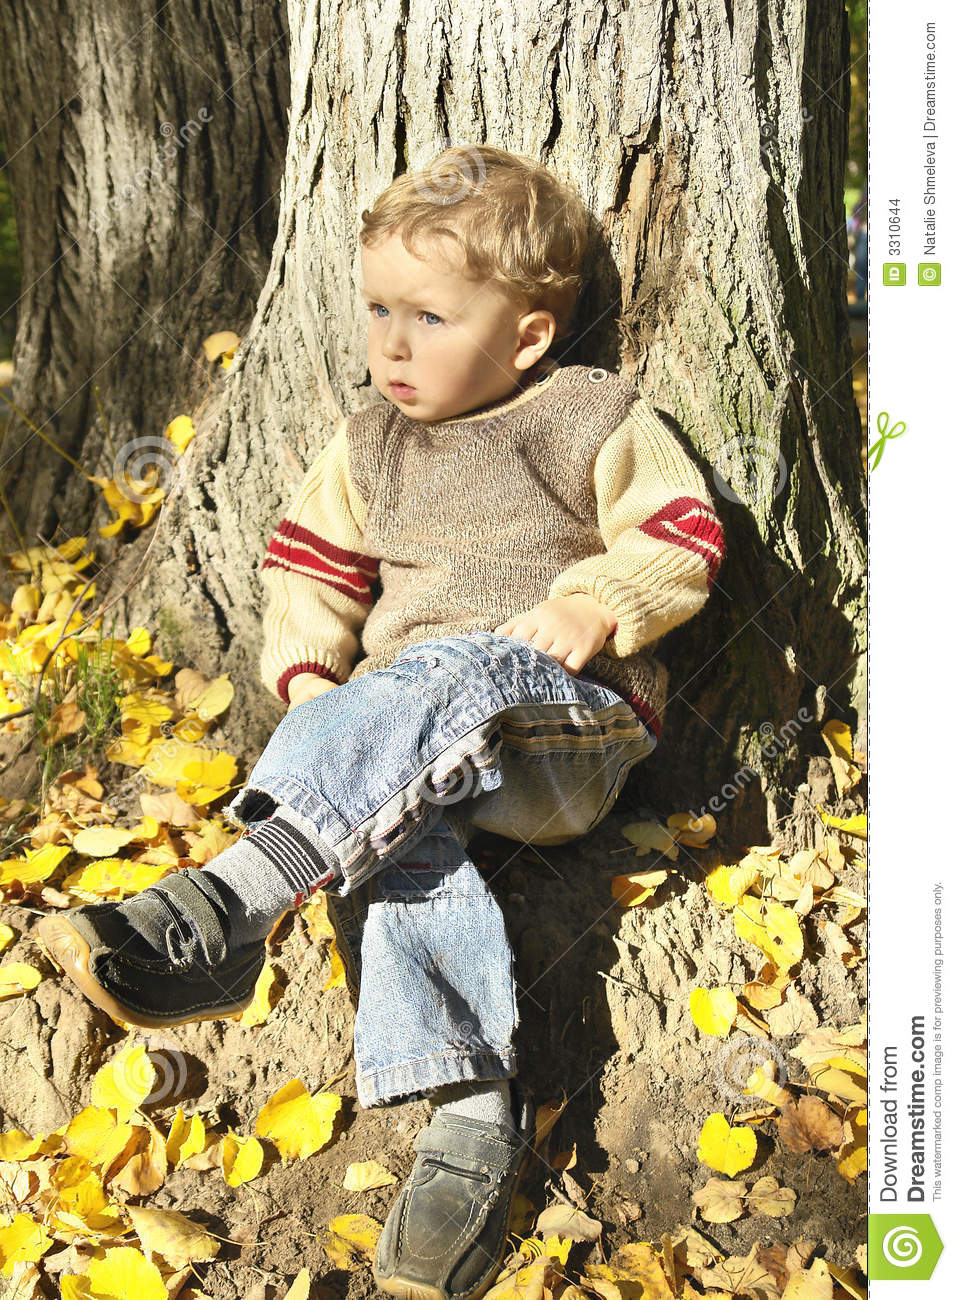 the boy is sitting under the Sitting, i can't see the boy, but if i crane around the monks, i can see his tree i'm wearing thermal long johns under a pair of khaki pants, a long-sleeve thermal undershirt, a sweater, and a.